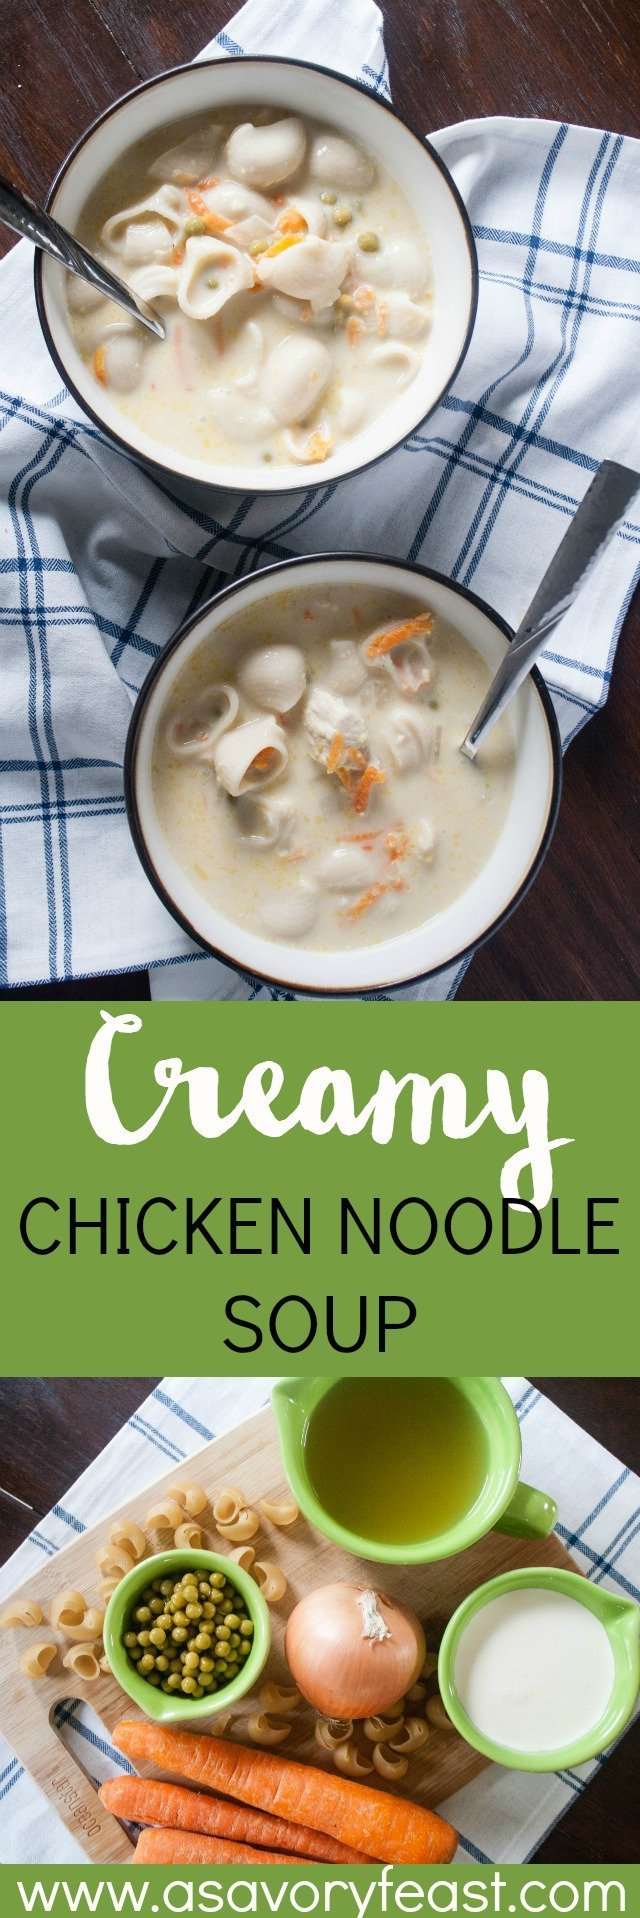 Warm up with this Creamy Chicken Noodle Soup! A flavorful one pot chicken soup with a bit of heavy cream added in. Loaded up with lots of veggies and noodles for a hearty meal. Great for a sick day, too!